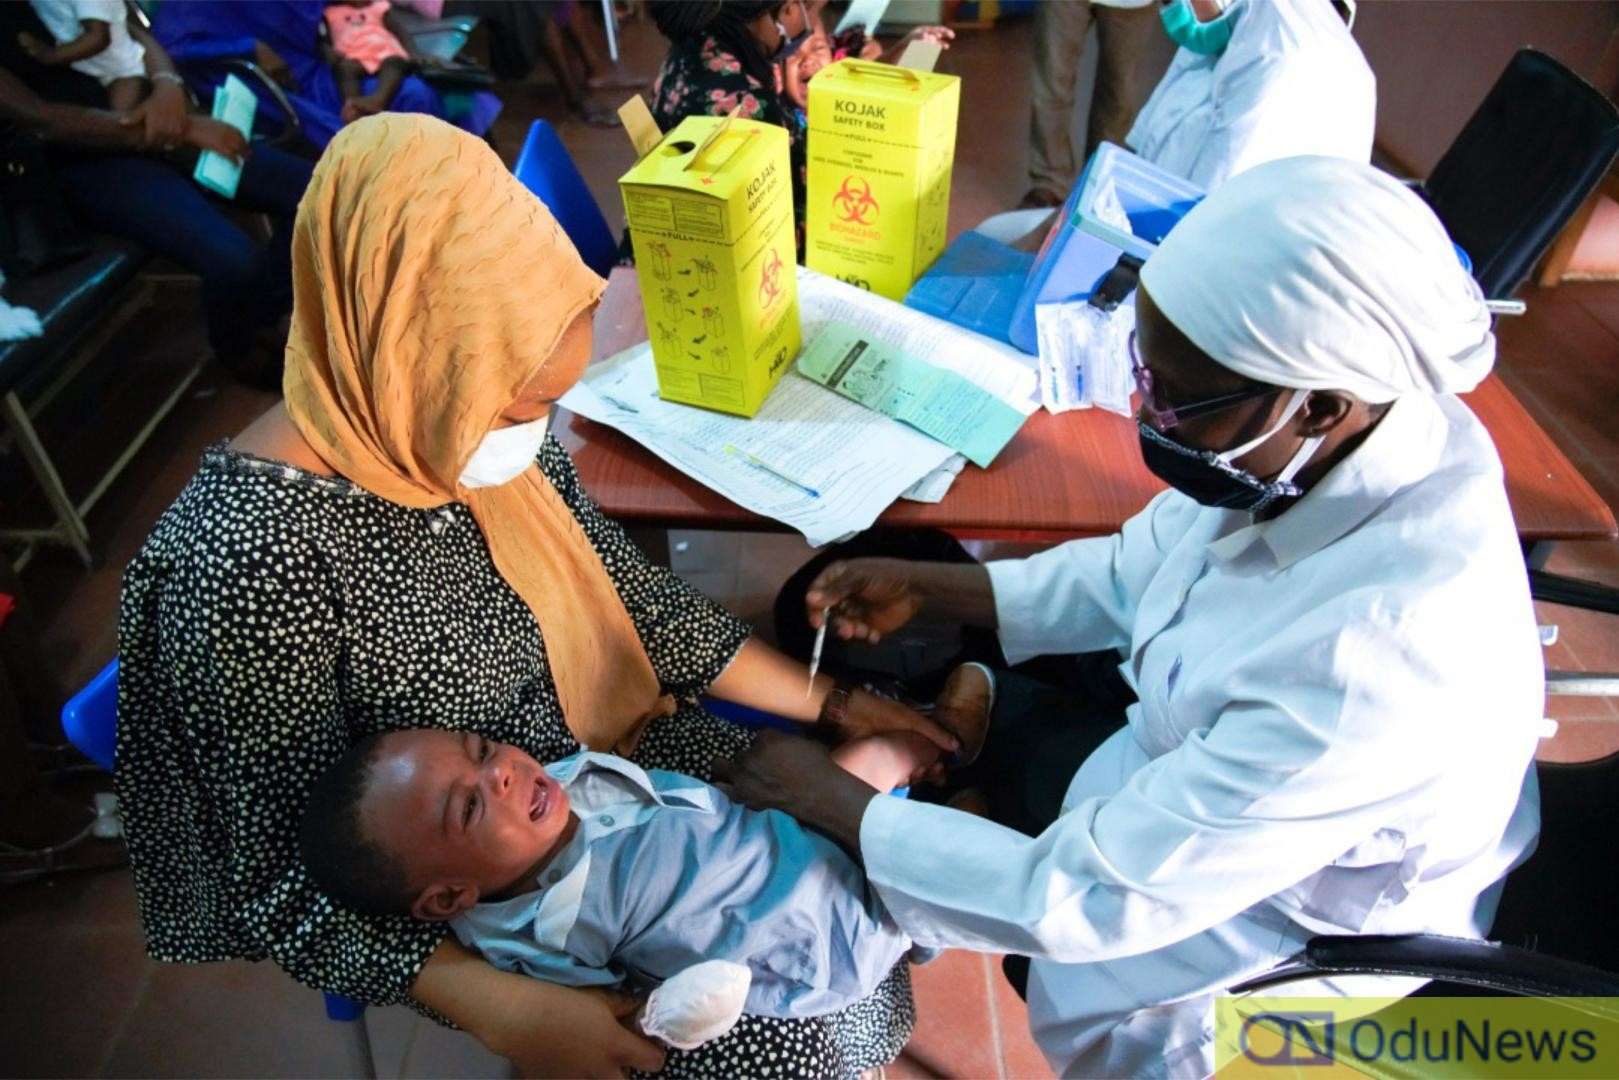 Millions At Risk As Coronavirus Disrupts Immunization Campaigns - UN